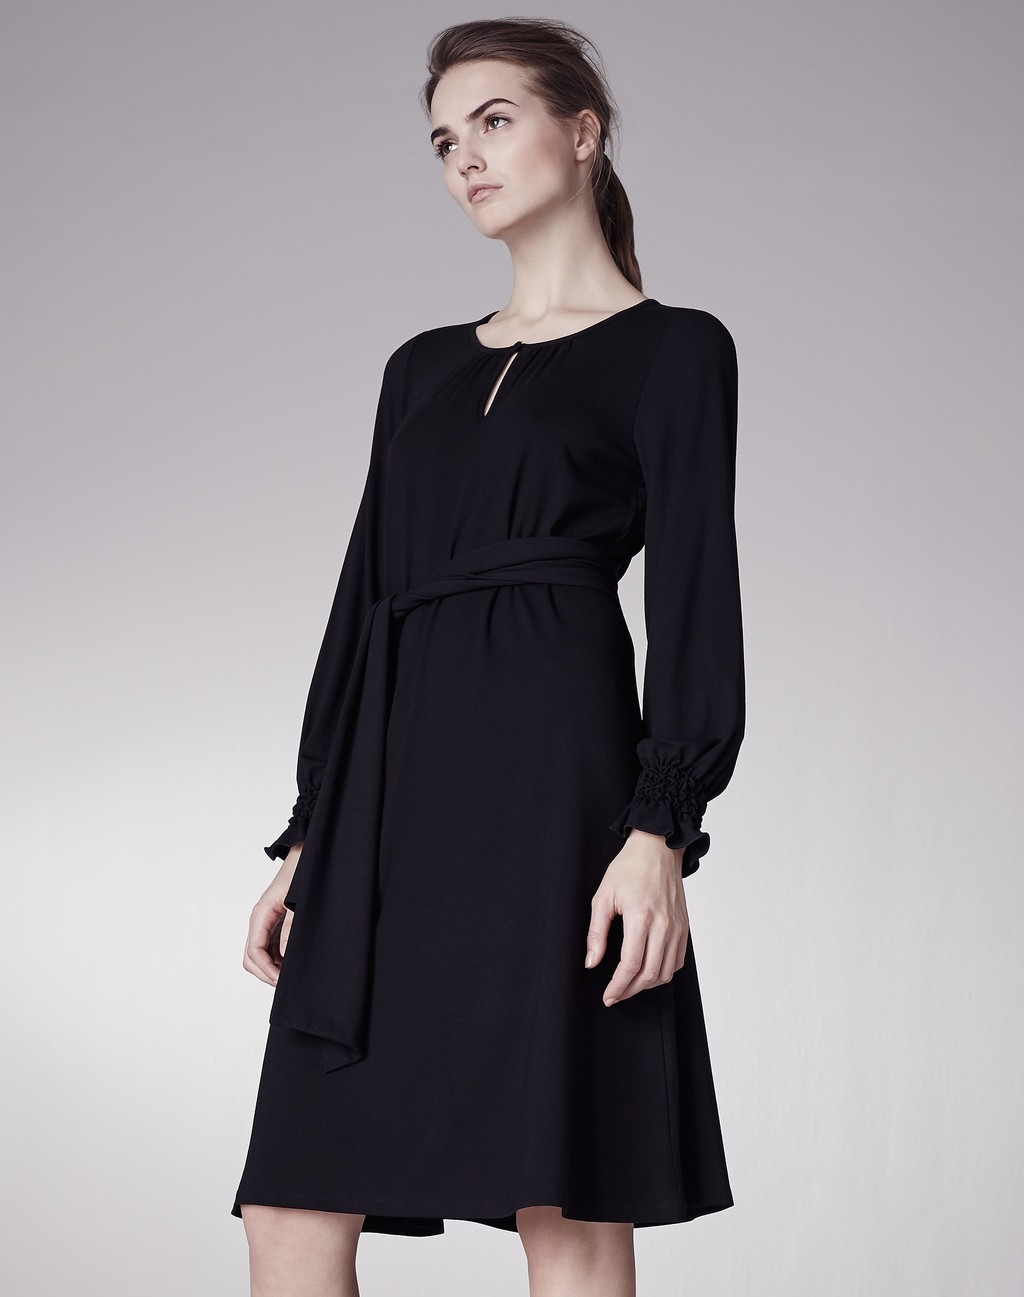 Ruched Cuff Belted Swing Dress Black - sleeve style: bell sleeve; fit: fitted at waist; pattern: plain; waist detail: belted waist/tie at waist/drawstring; predominant colour: black; occasions: work, occasion; length: on the knee; style: fit & flare; neckline: scoop; fibres: polyester/polyamide - 100%; hip detail: soft pleats at hip/draping at hip/flared at hip; sleeve length: long sleeve; pattern type: fabric; texture group: jersey - stretchy/drapey; season: s/s 2016